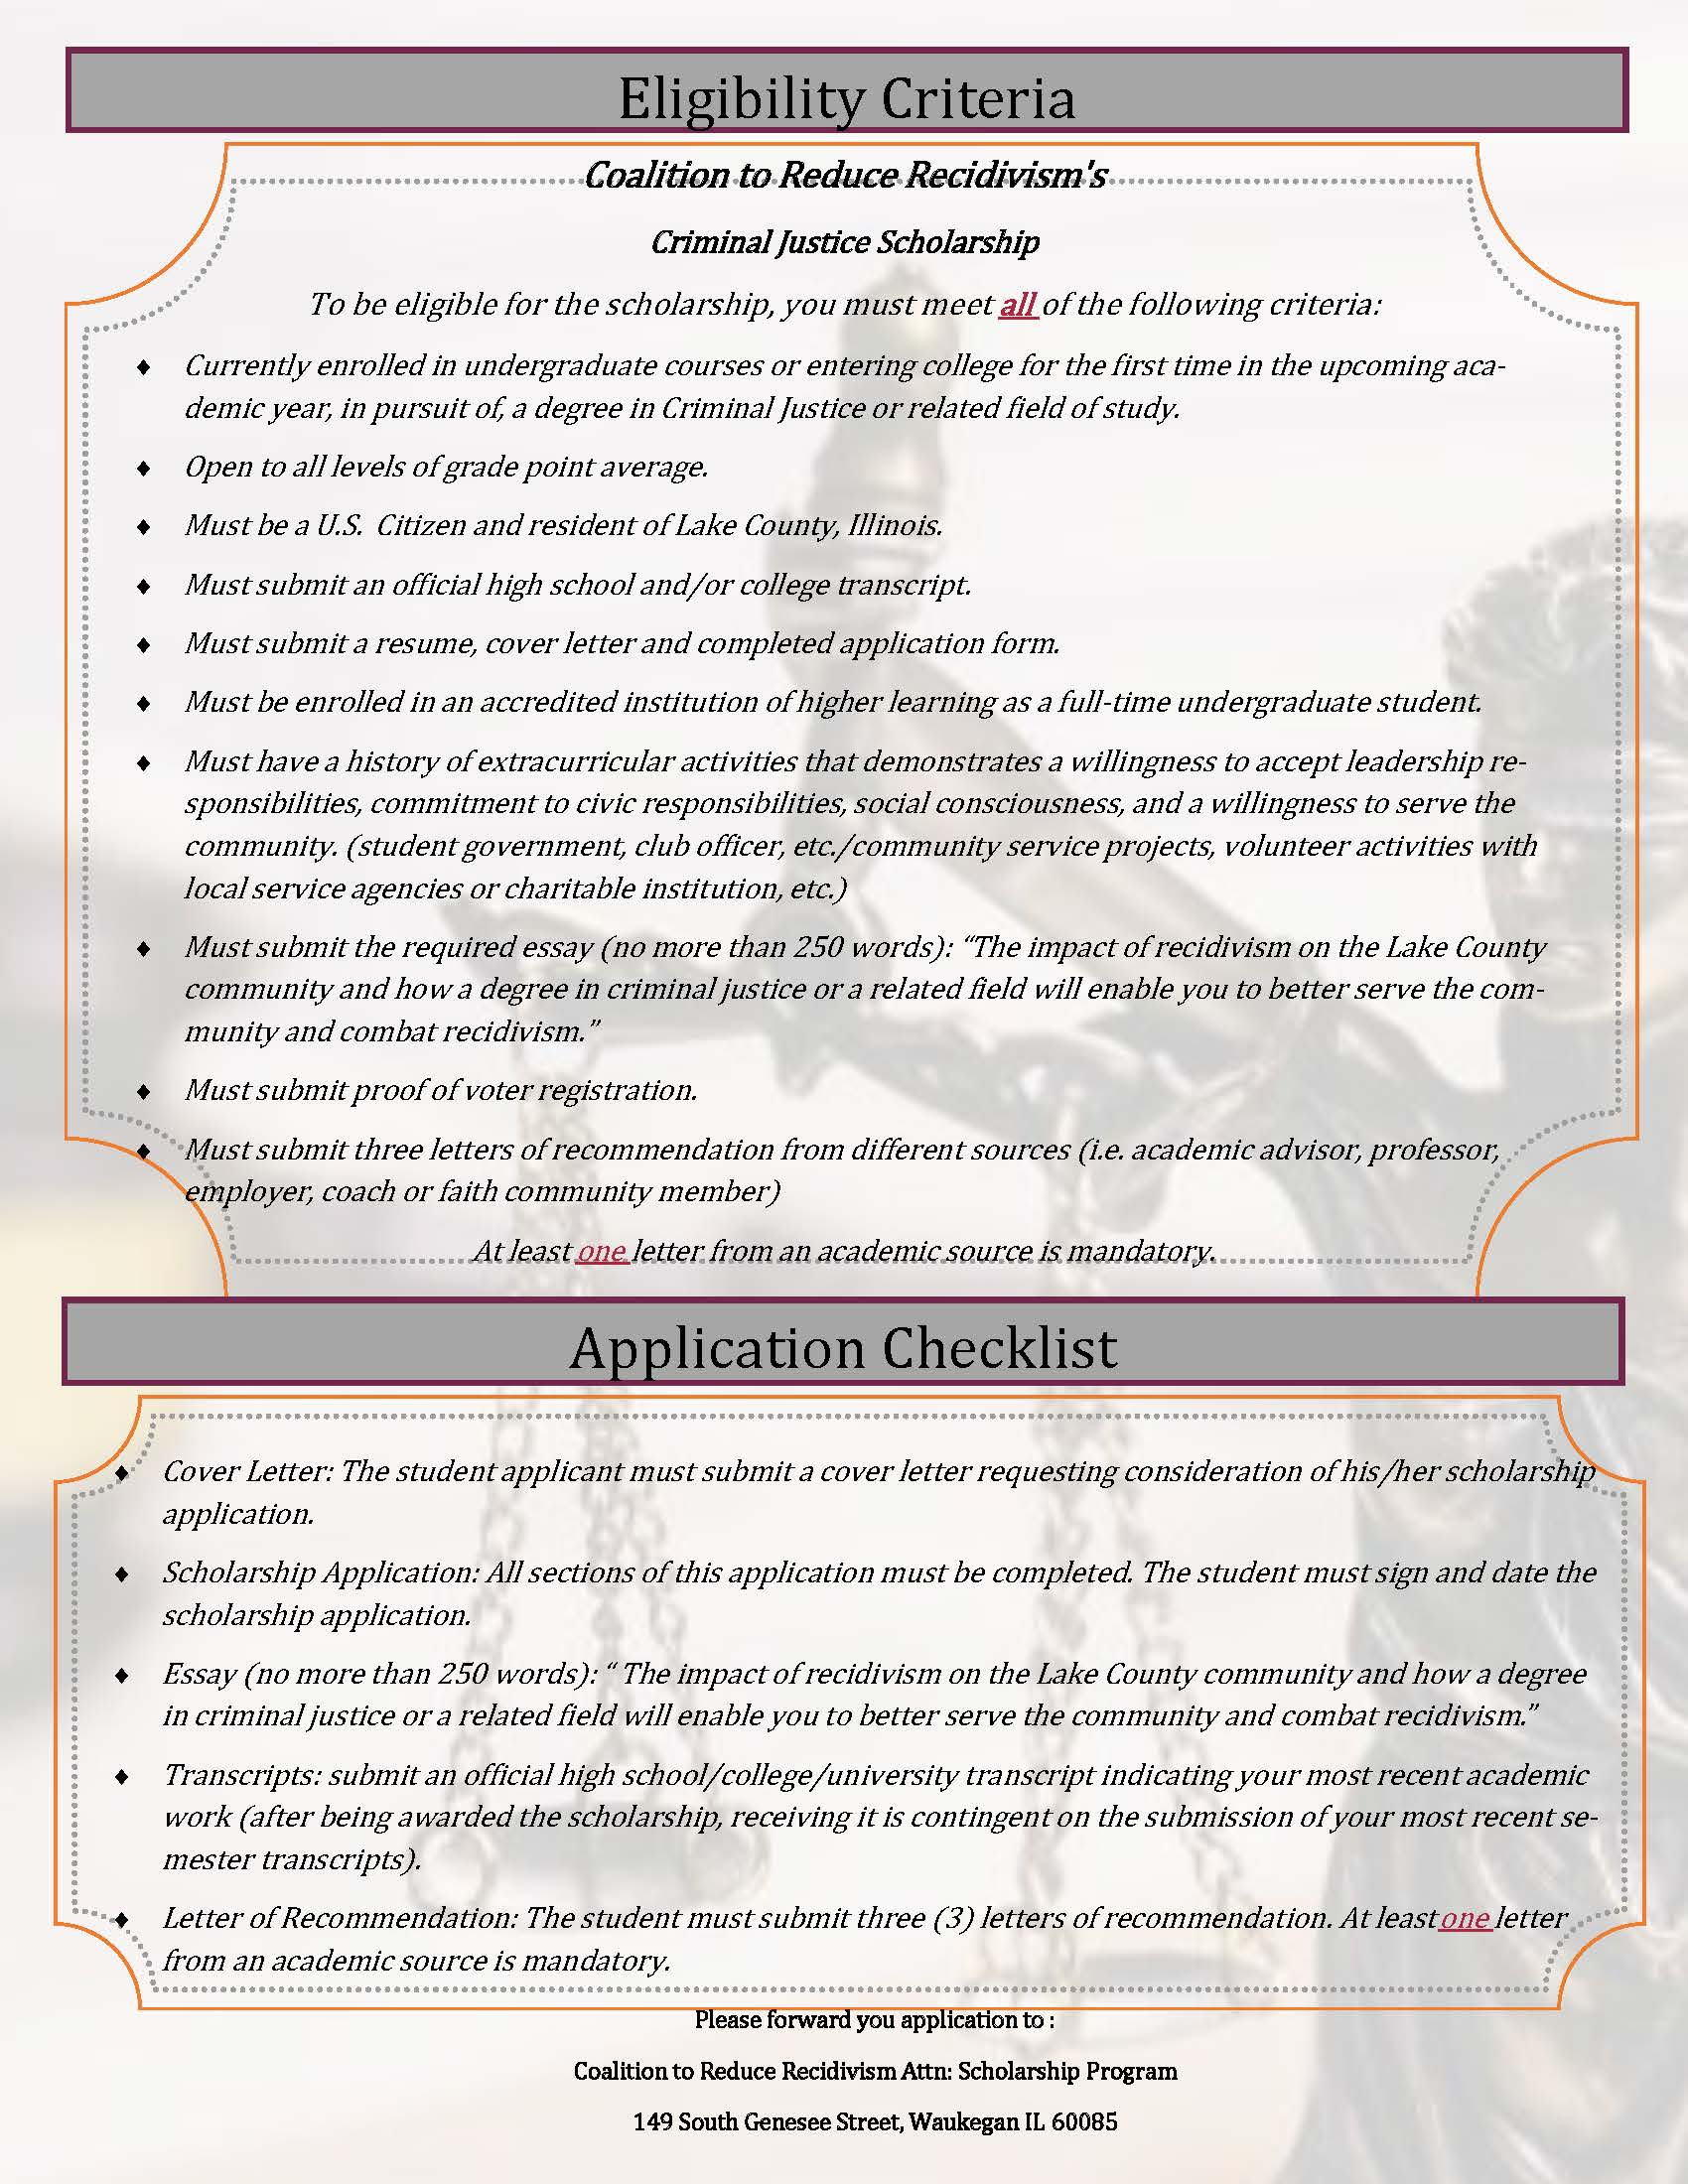 2021 Annual Criminal Justice Scholarship Application (1) (1)_Page_4